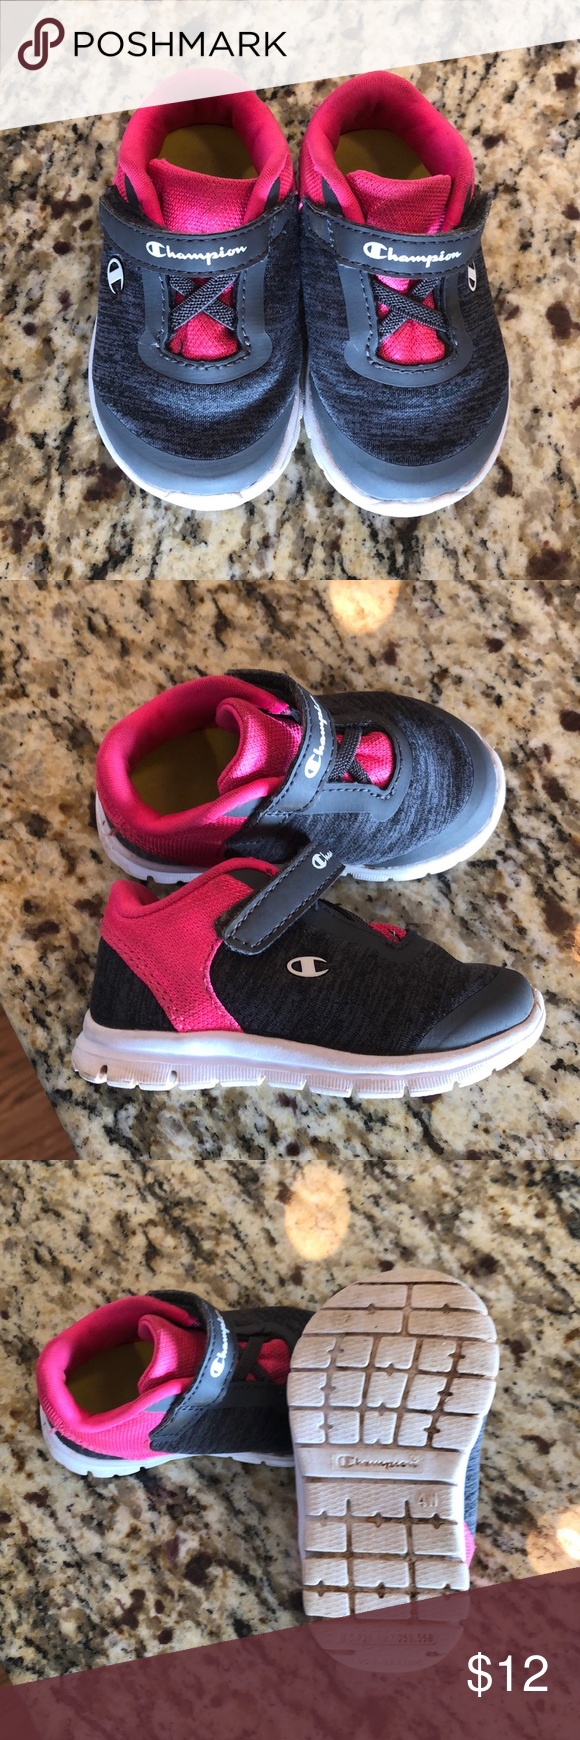 4W Champion Baby Shoes   Baby shoes